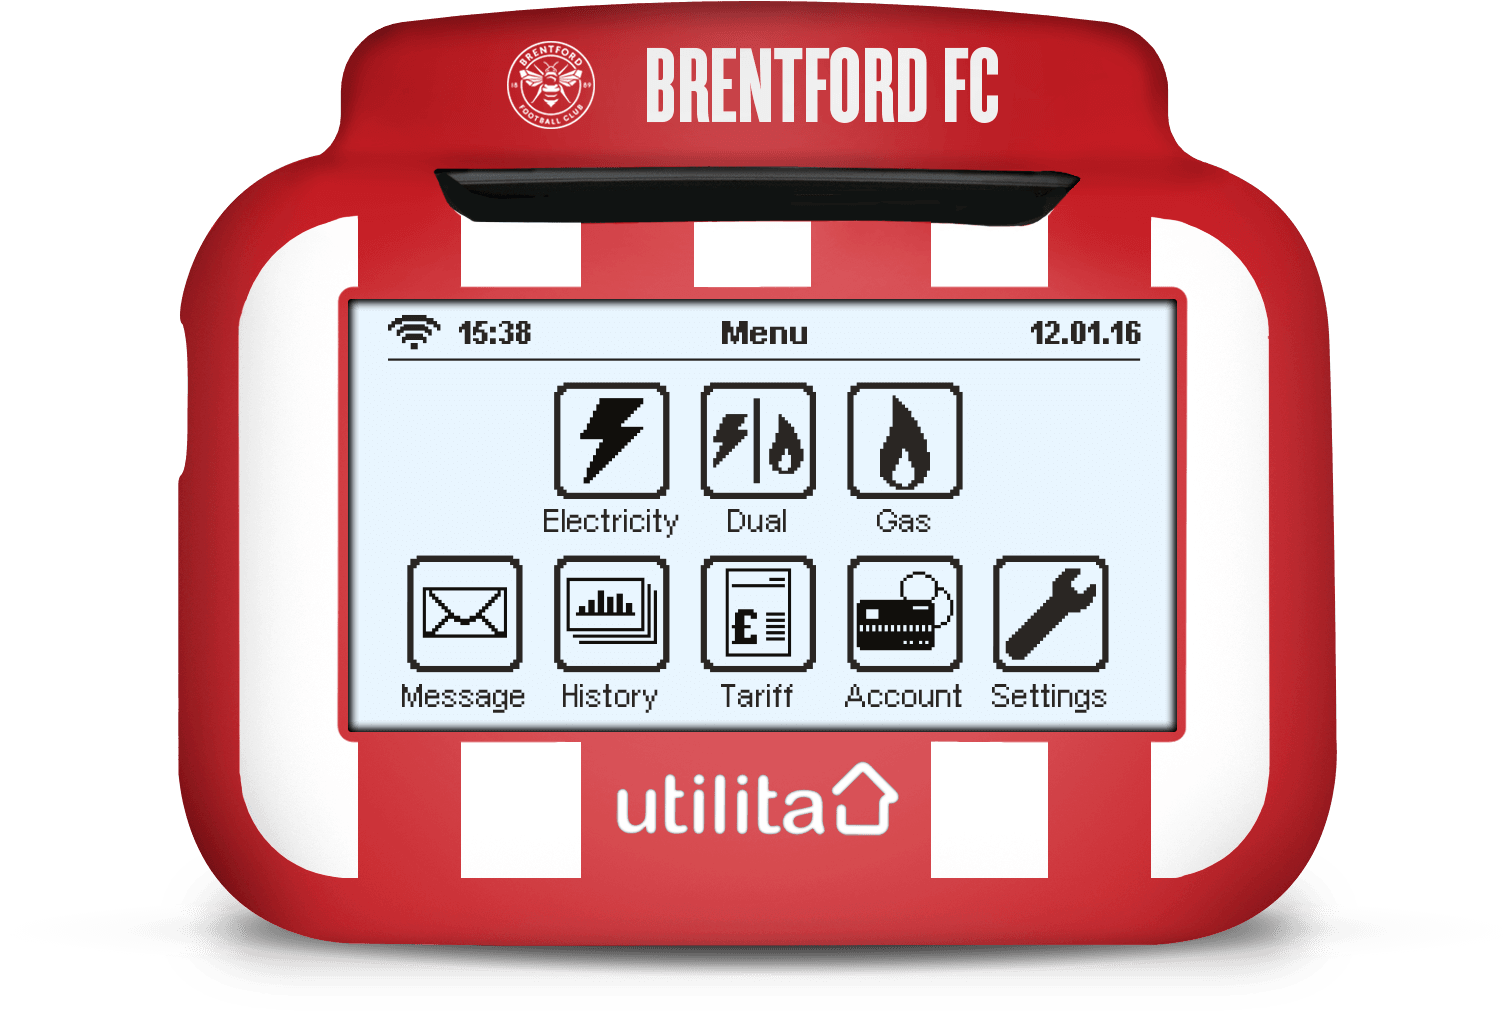 brentford In-Home Display Cover